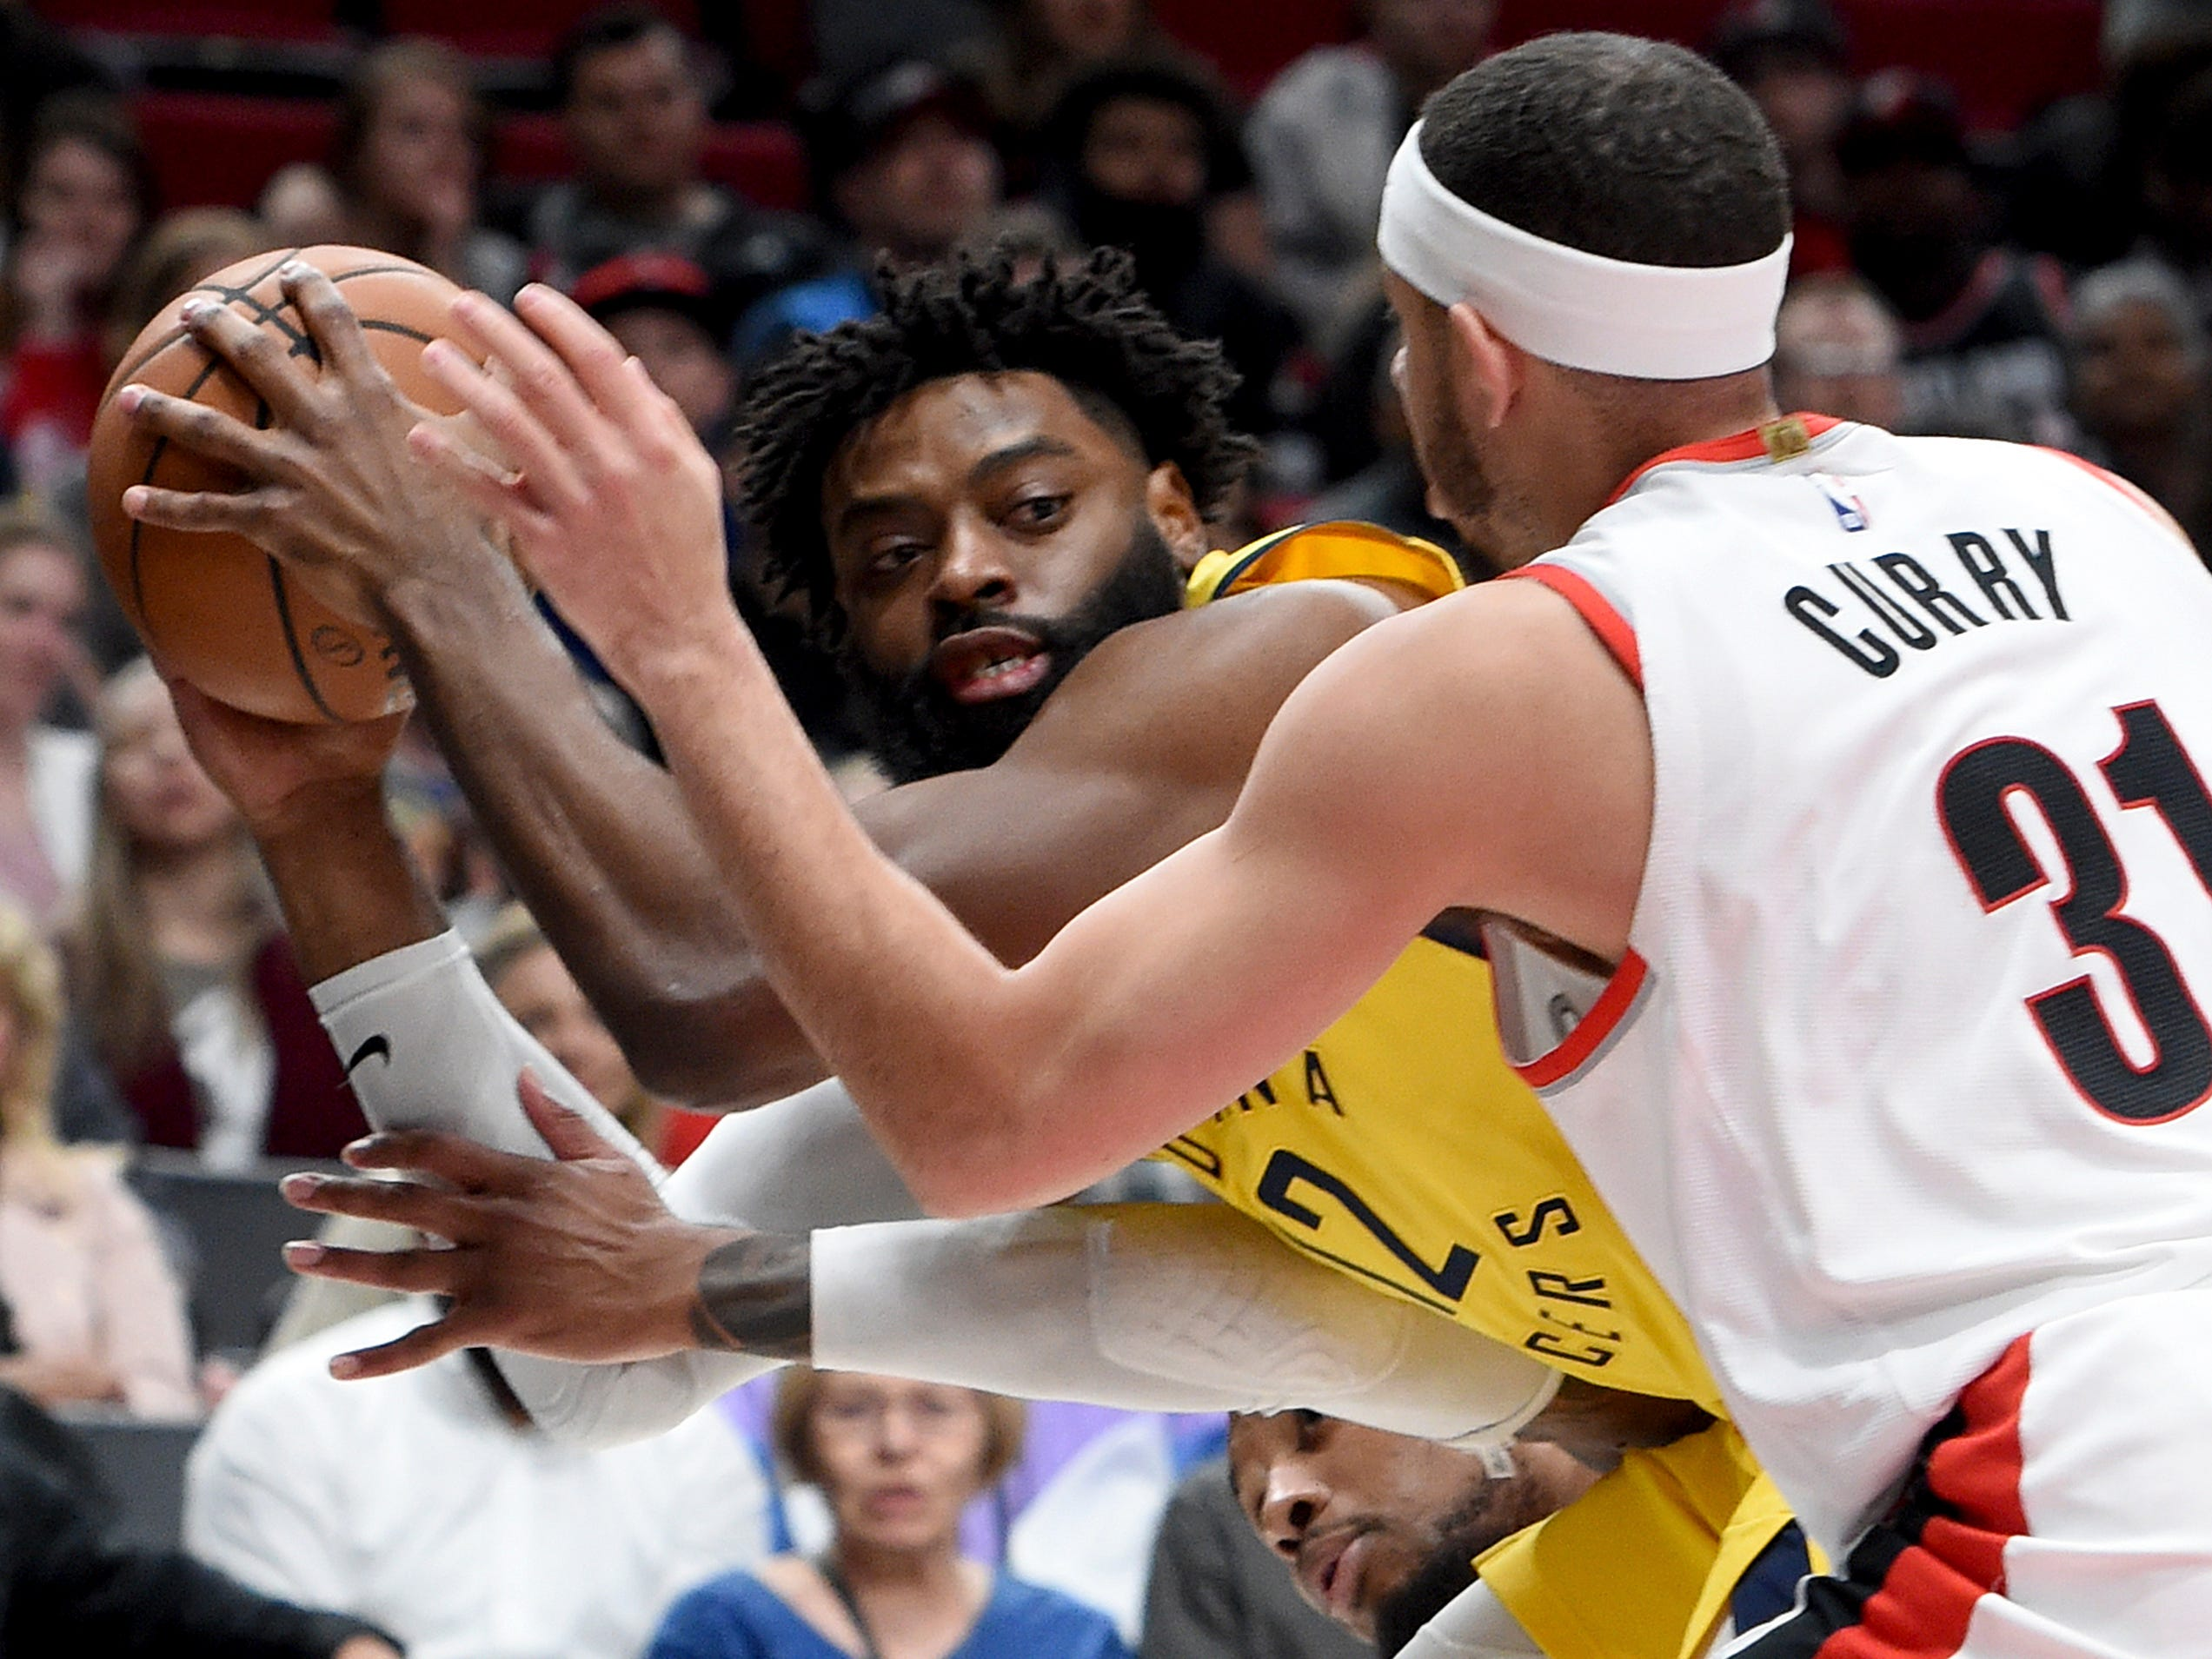 Indiana Pacers guard Tyreke Evans, left, looks to pass the ball as Portland Trail Blazers guard Seth Curry, right, defends during the first half of an NBA basketball game in Portland, Ore., Monday March 18, 2019.